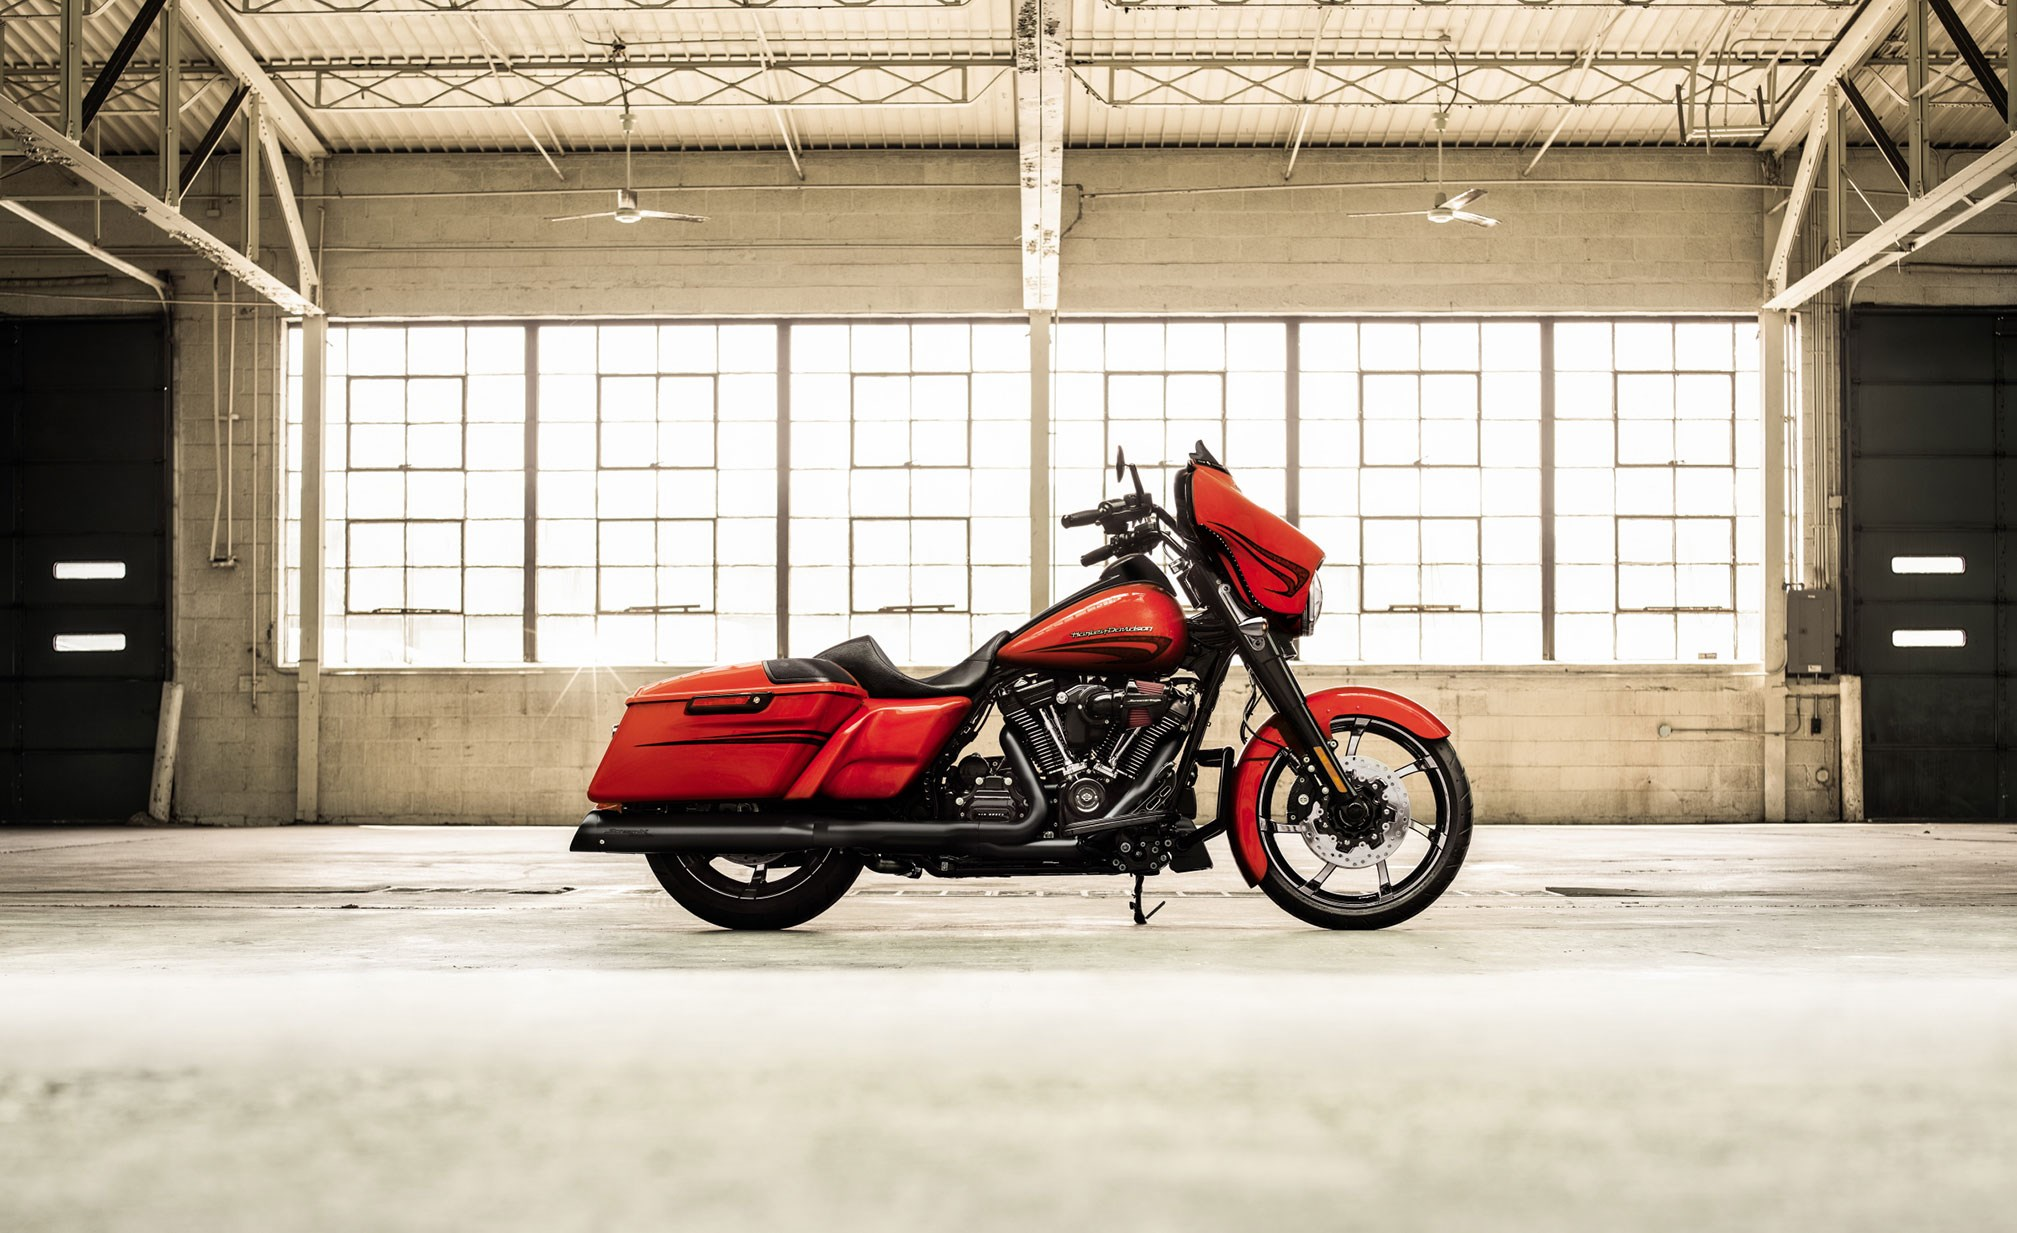 2017x1233 - Harley-Davidson Electra Glide Ultra Classic Wallpapers 31